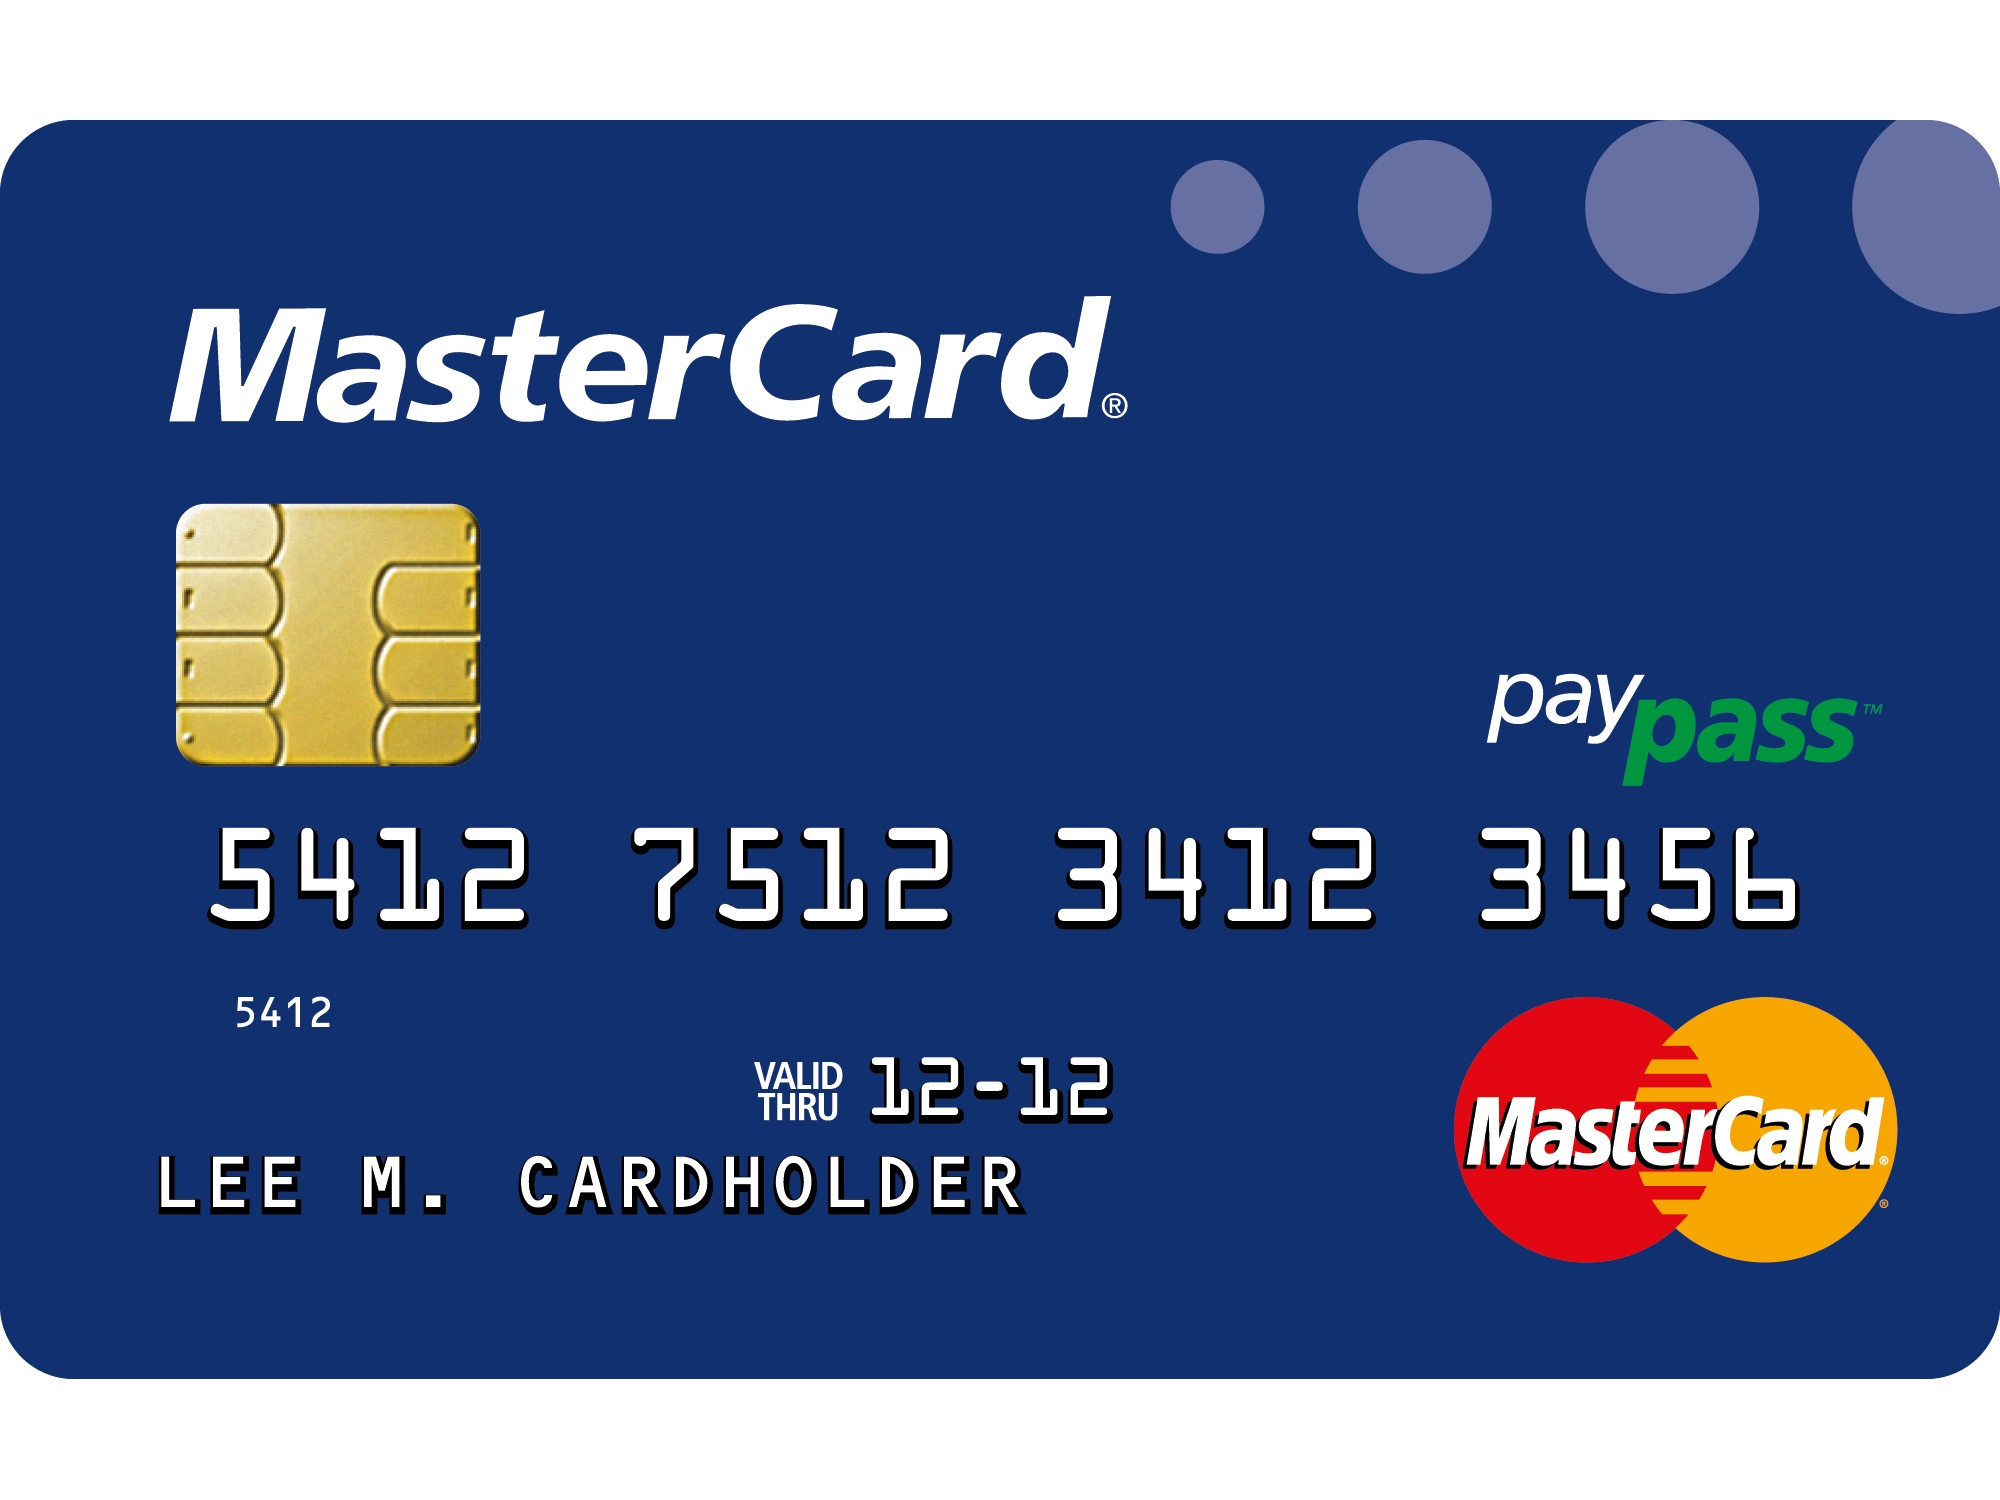 Paypass Mastercard Paypass Less Wires Mastercard Paypass Less Less Wires Mastercard Wires